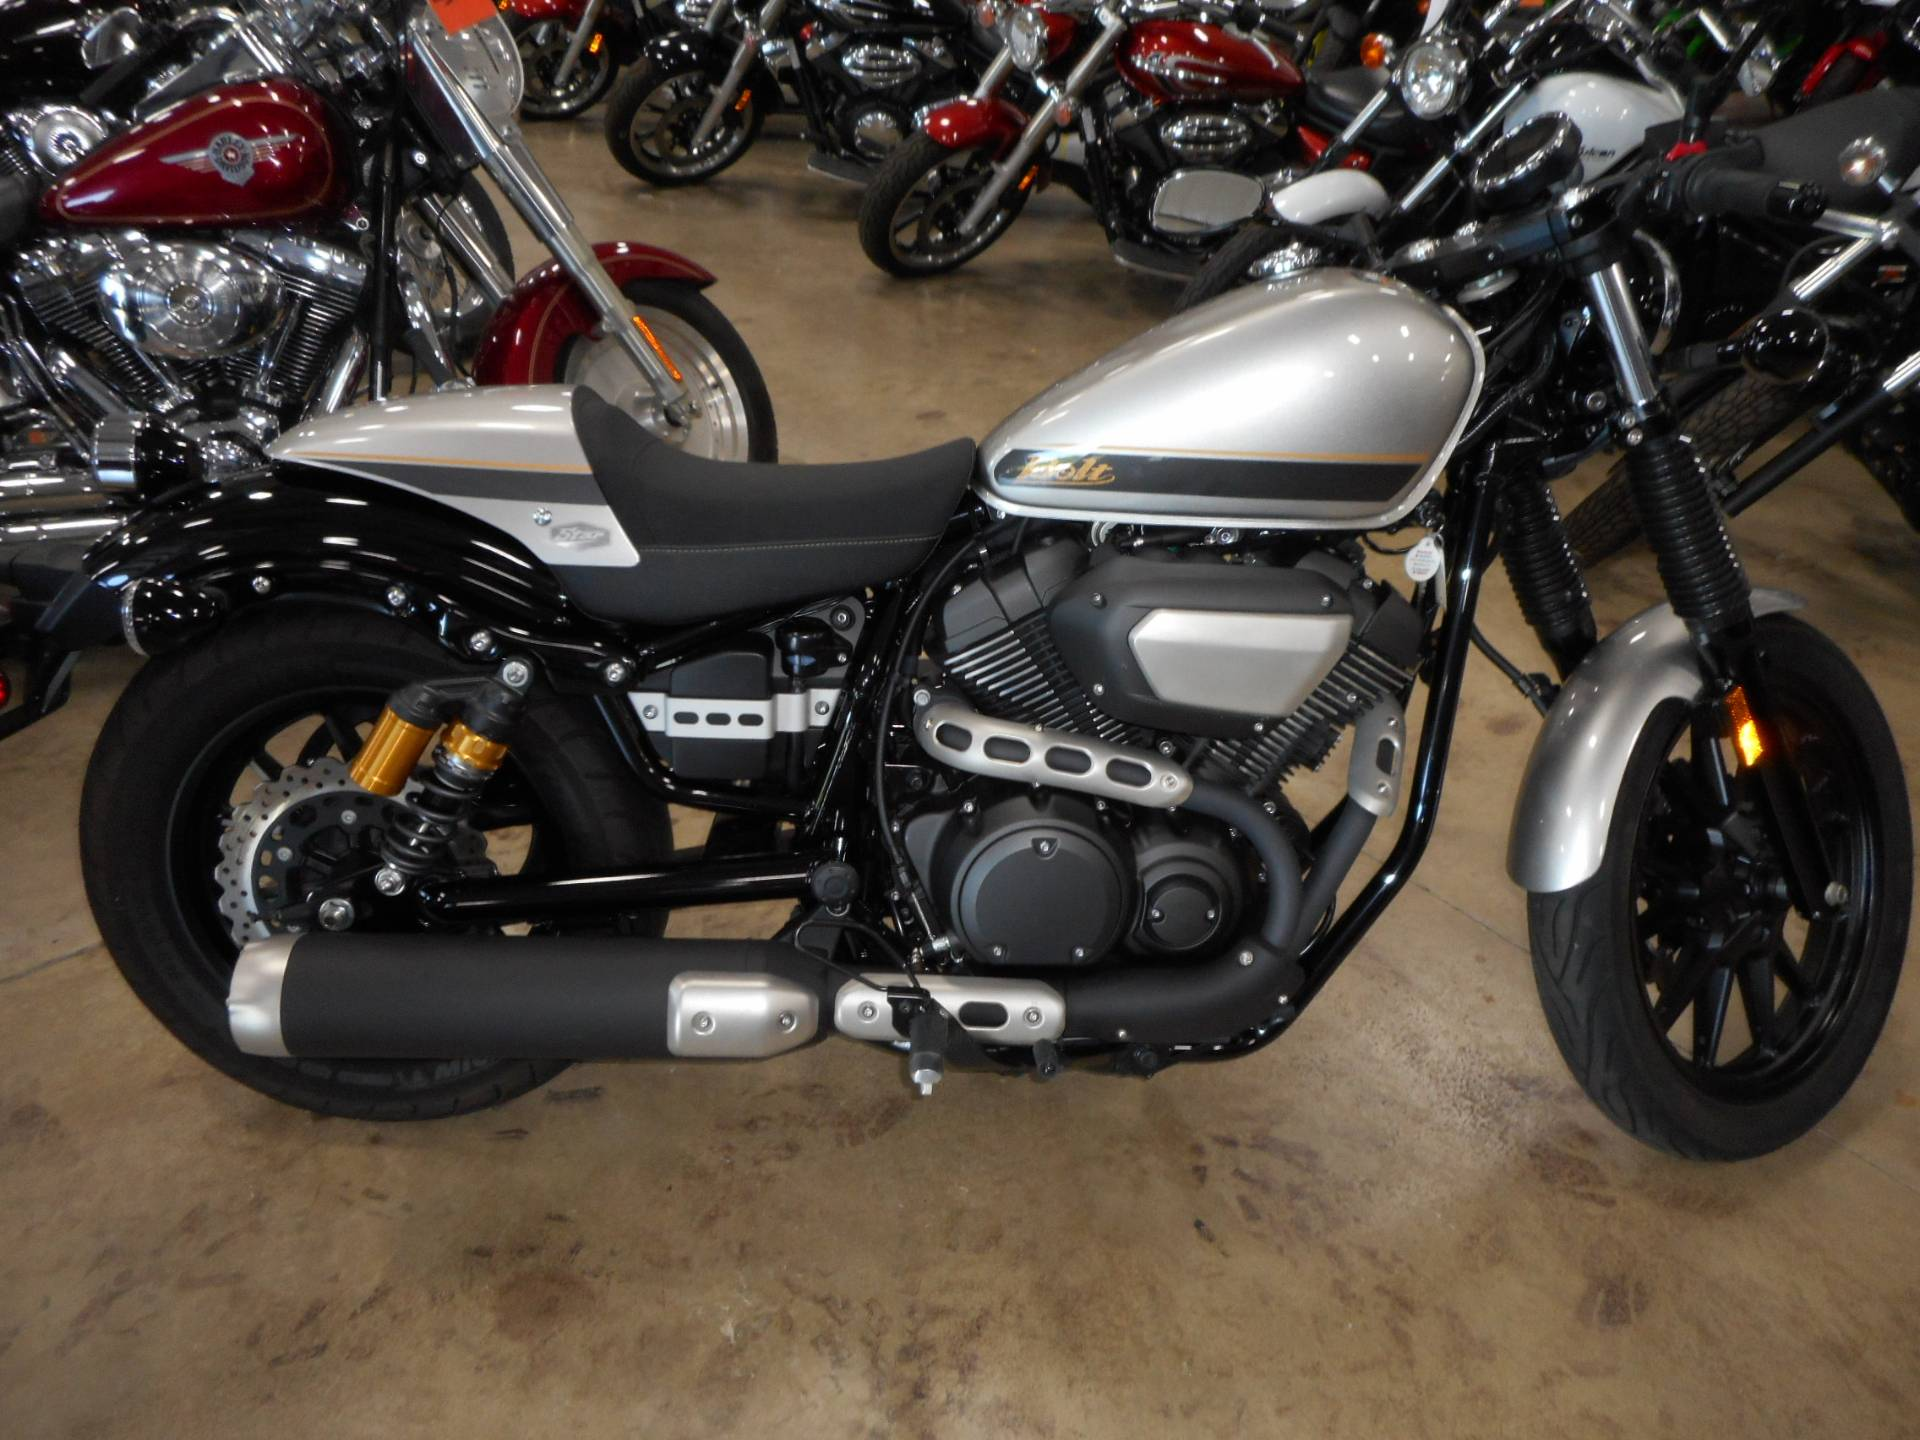 Used 2015 Yamaha Bolt C-Spec Motorcycles in Belvidere, IL